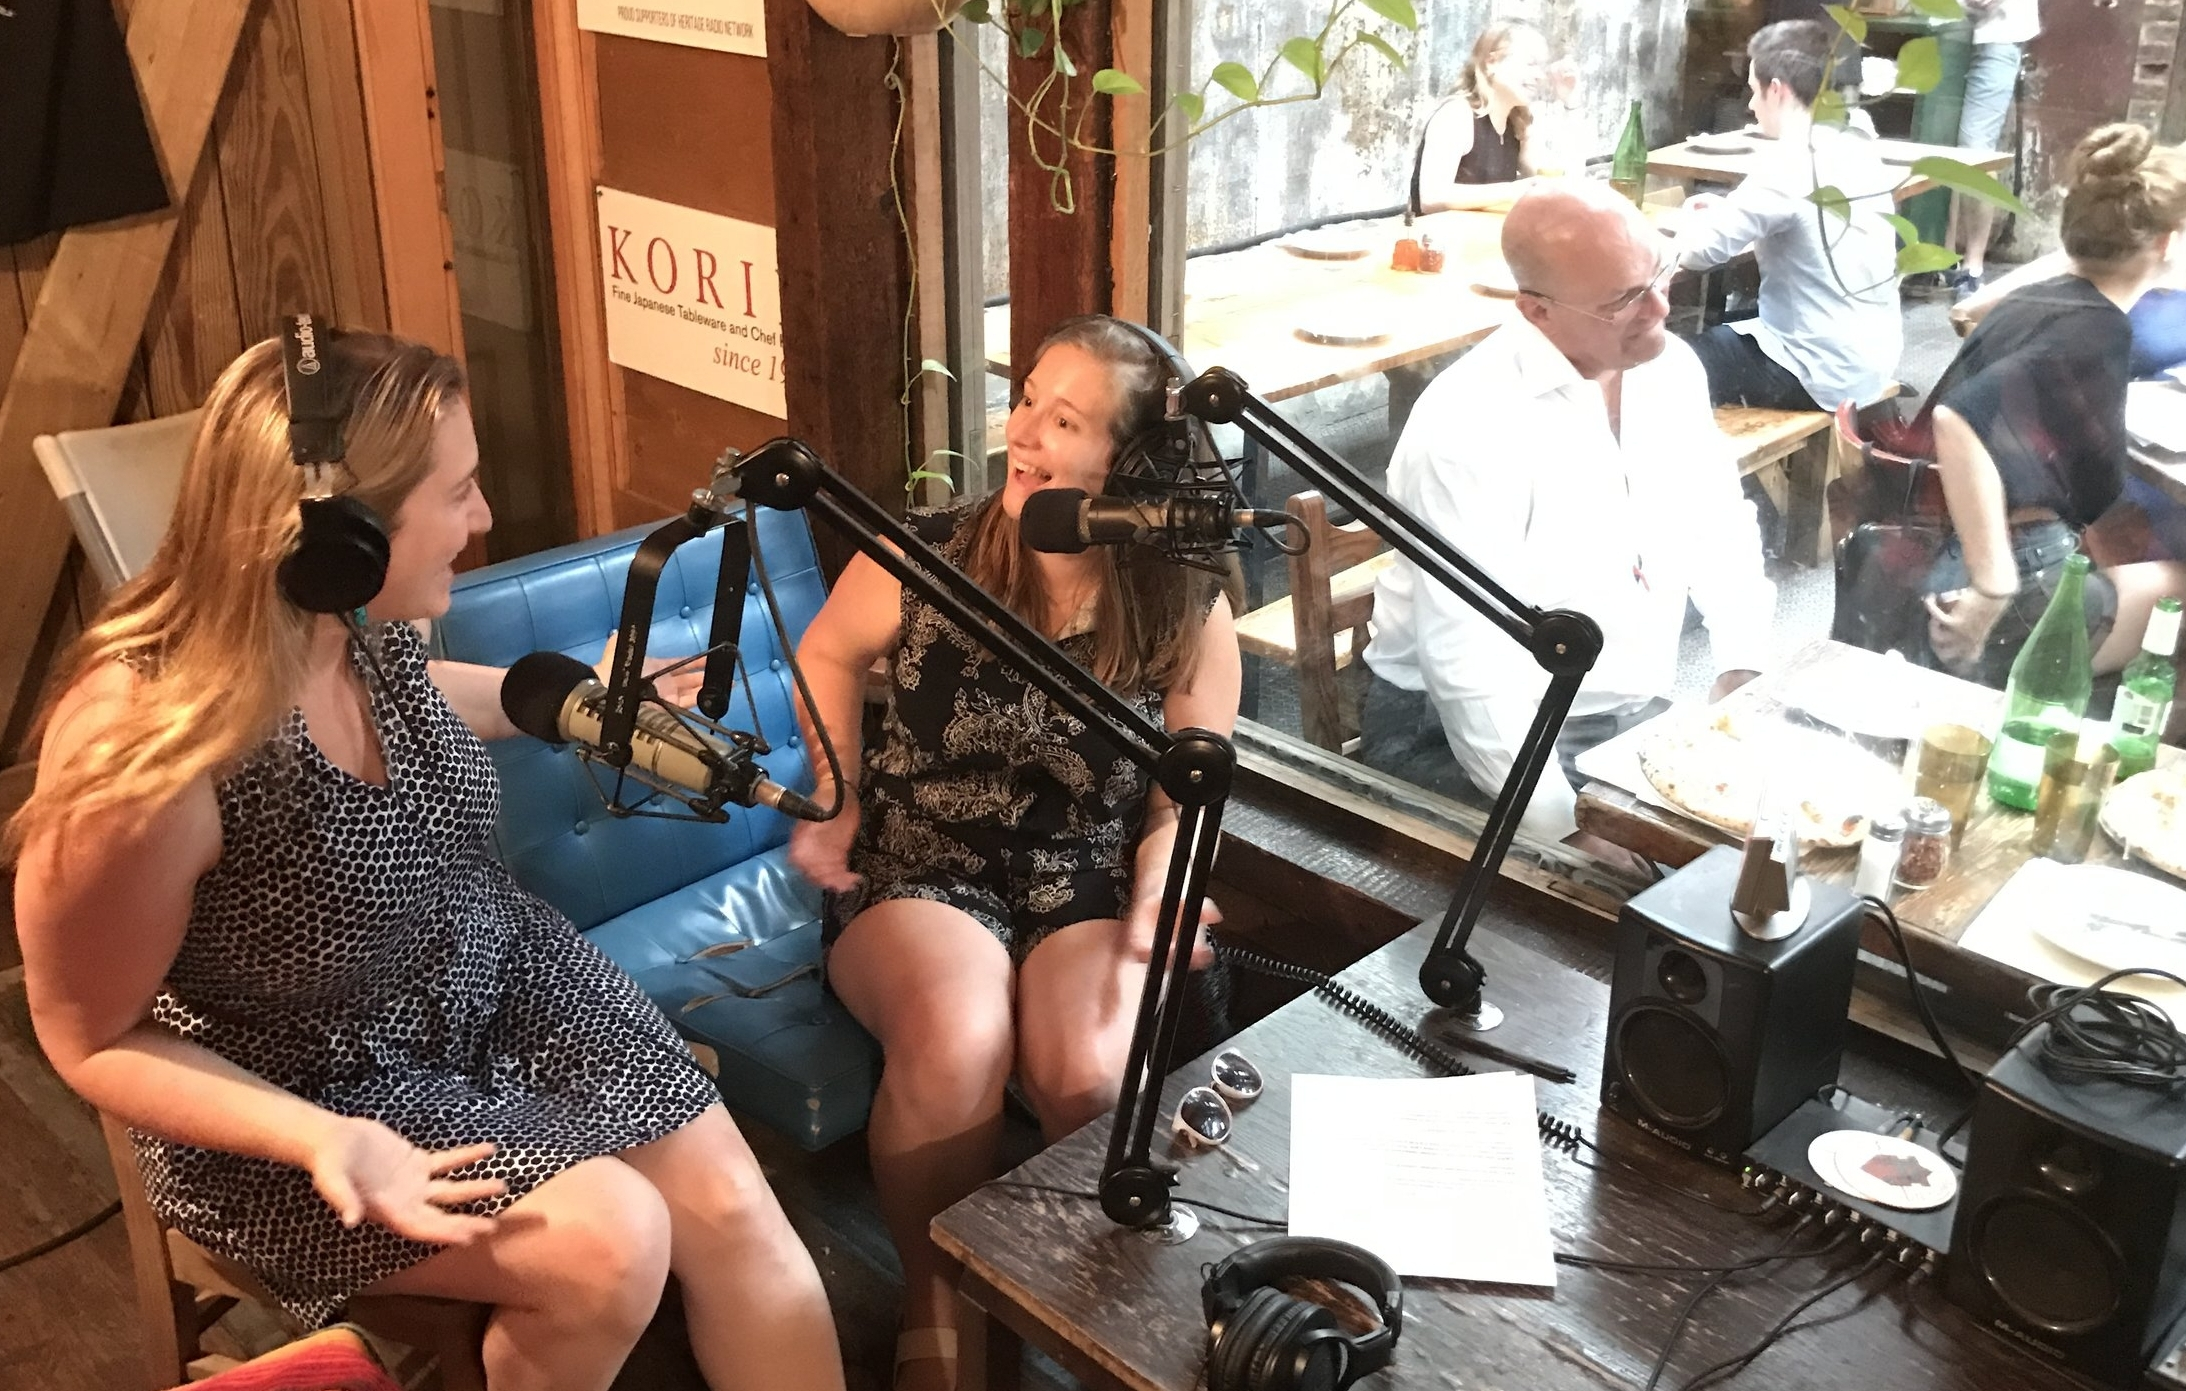 Executive Director Caity Moseman Wadler and Communications Director Kat Johnson hosting  Heritage Radio Network Happy Hour  with Roberta's just on the other side of the (shipping container) studio window.  (Photos courtesy of Heritage Radio Network)